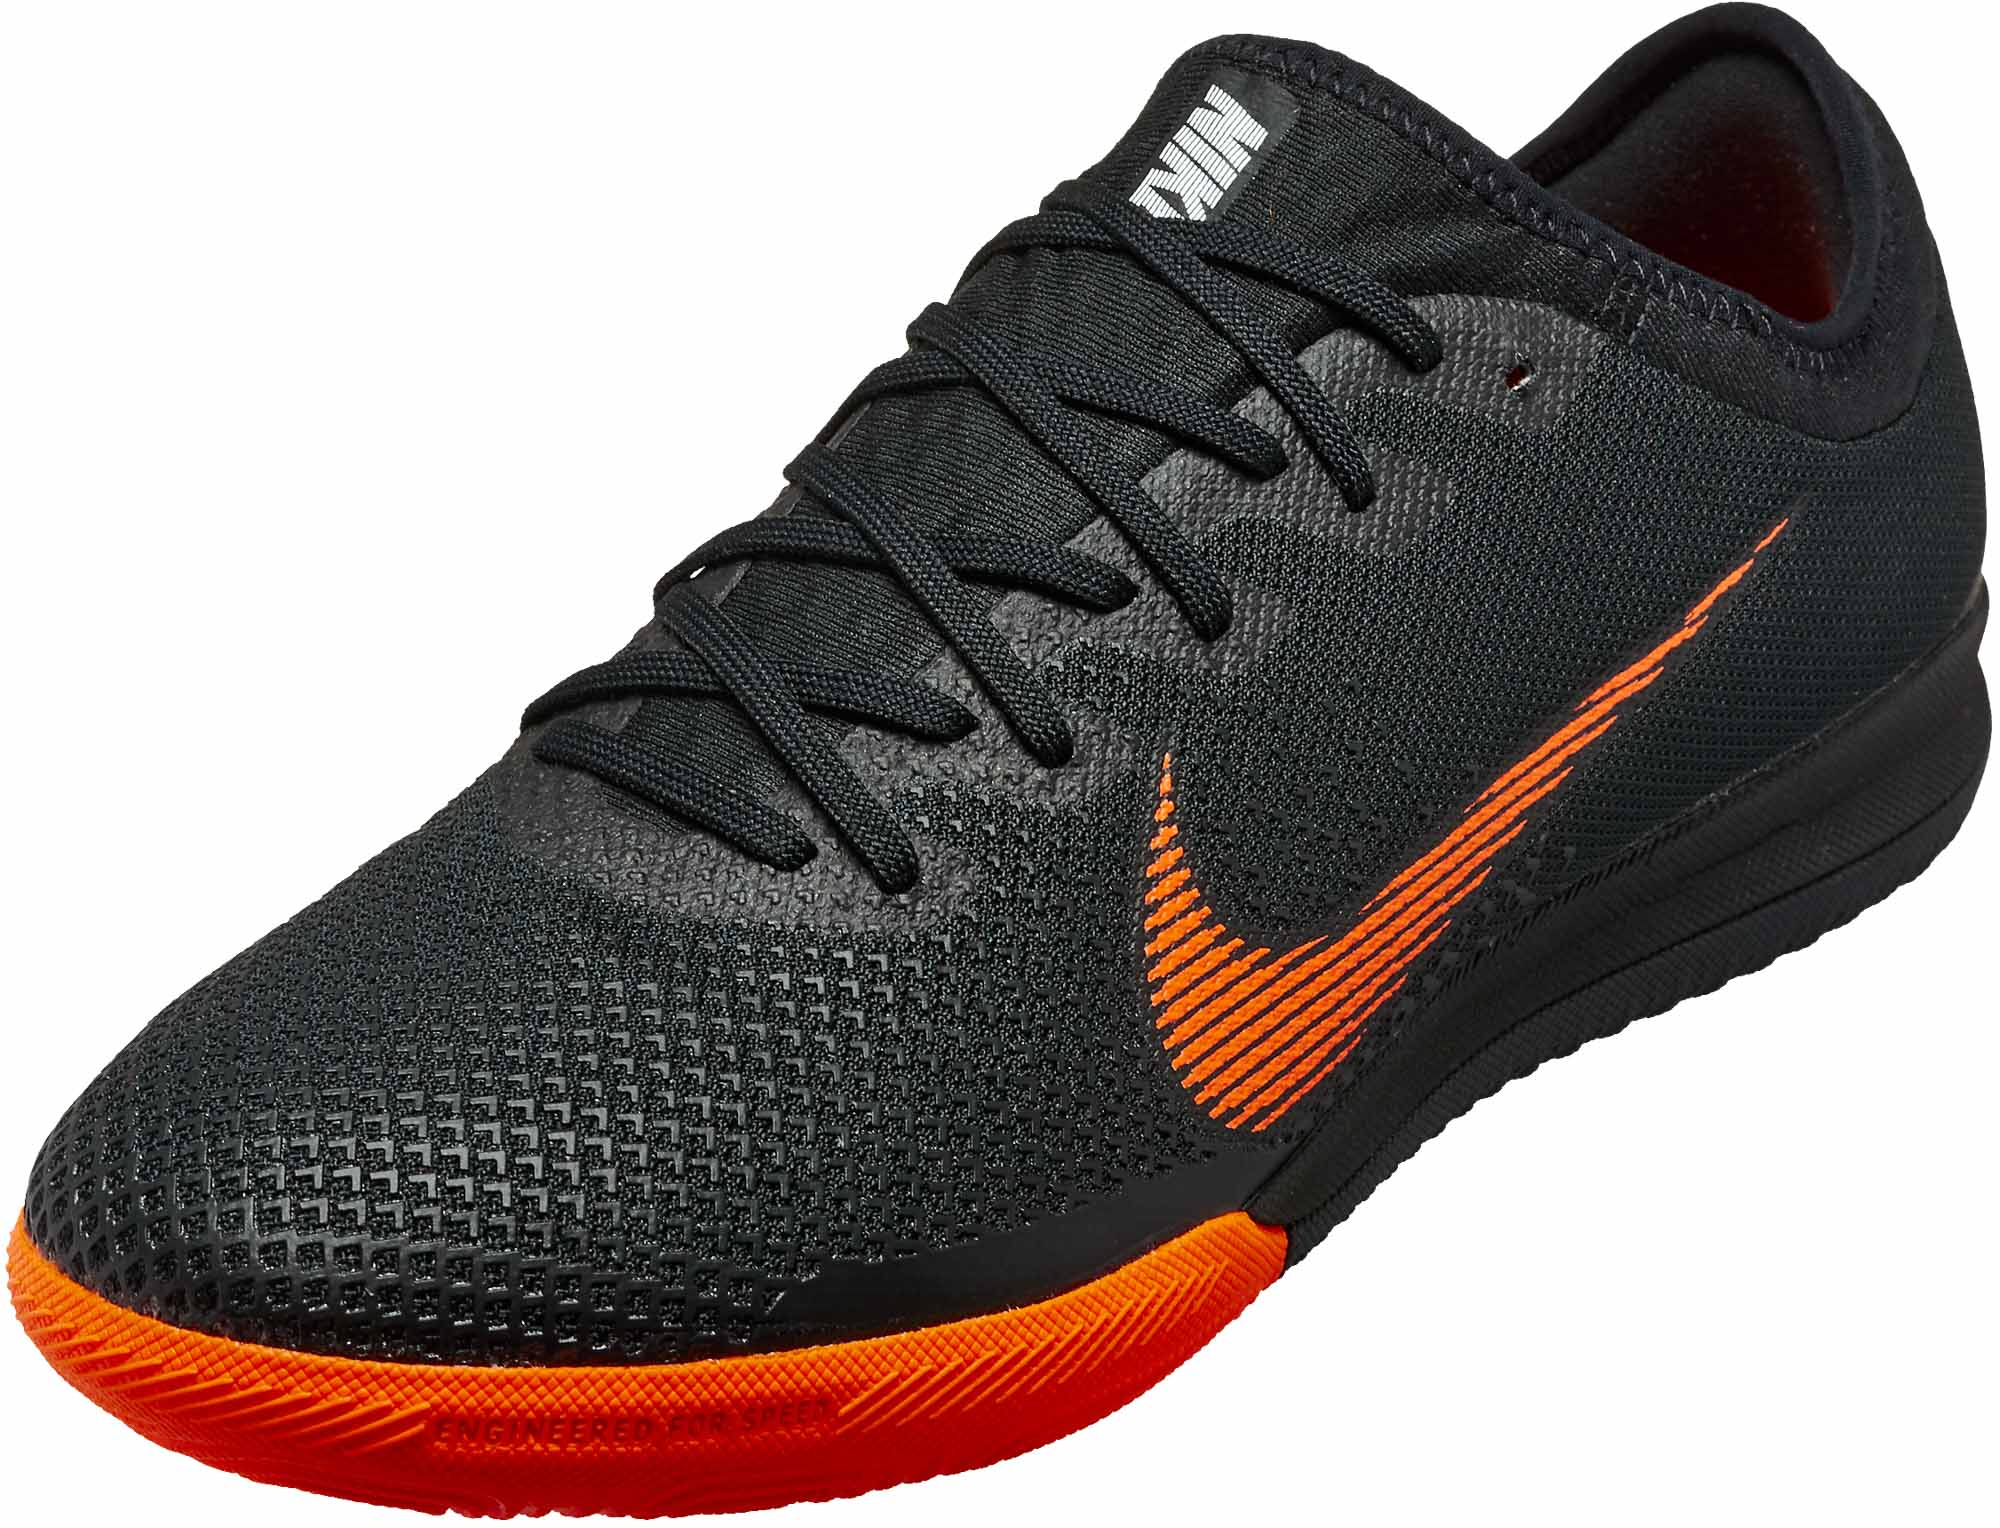 reputable site 30308 50272 Nike VaporX 12 Pro IC – Black/Total Orange